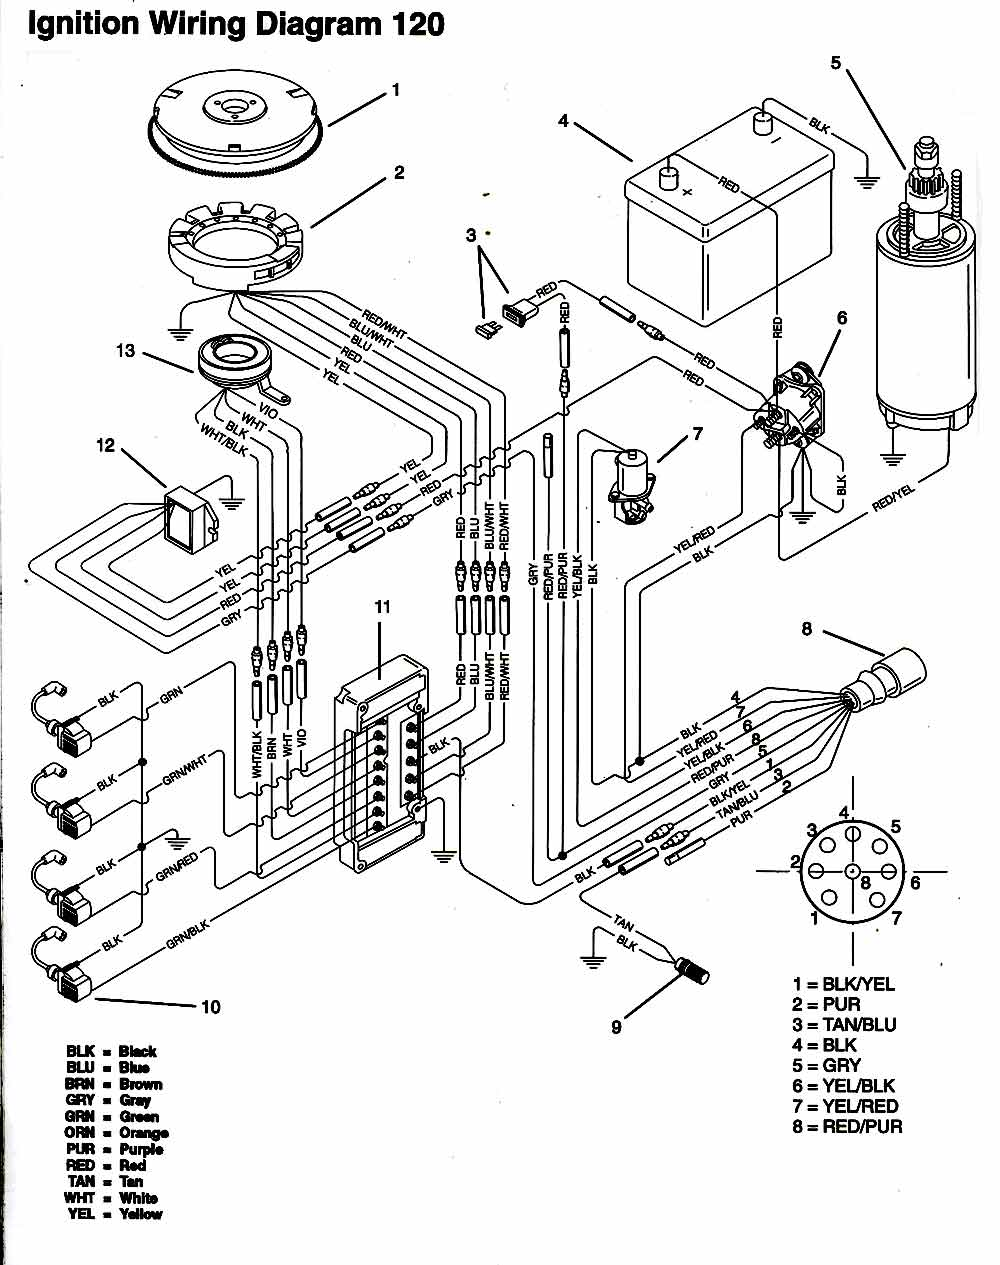 1991 Mercury Tracer Diagram Wiring Schematic Images Gallery. 91 mercury  topaz fuse box ...